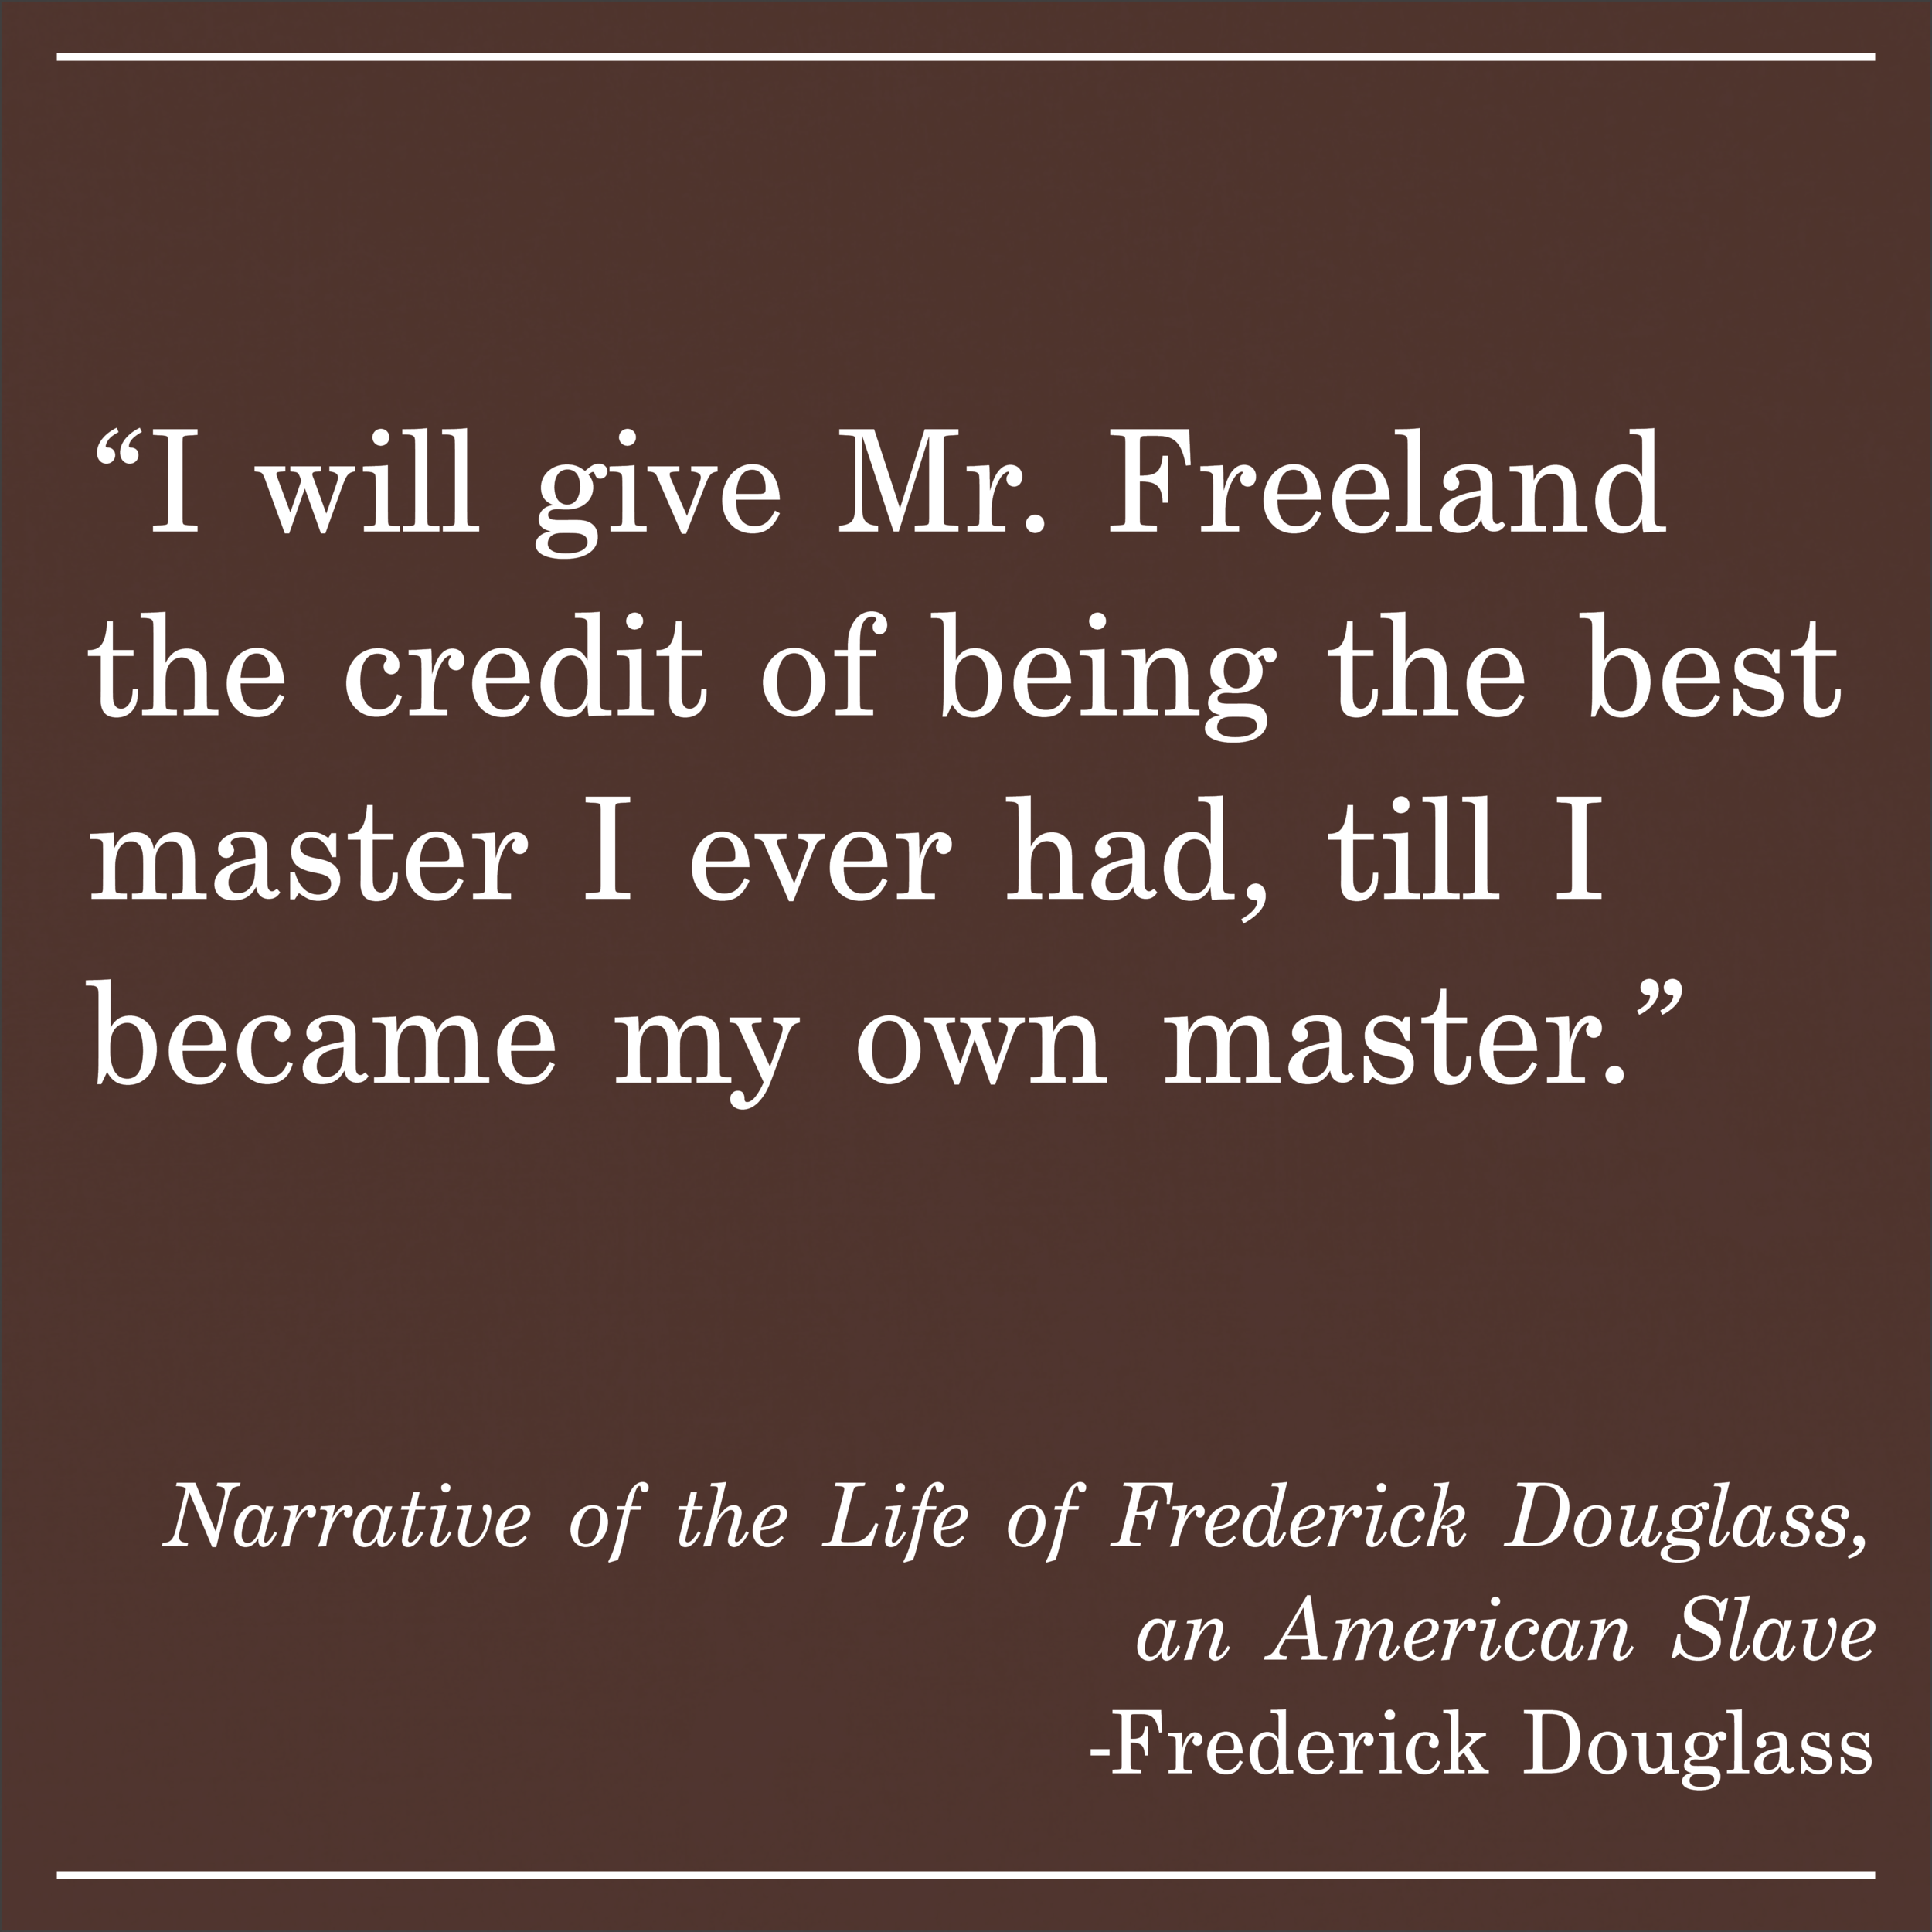 Daily Quote Narrative of the Life of Frederick Douglass, an American Slave by Frederick Douglass